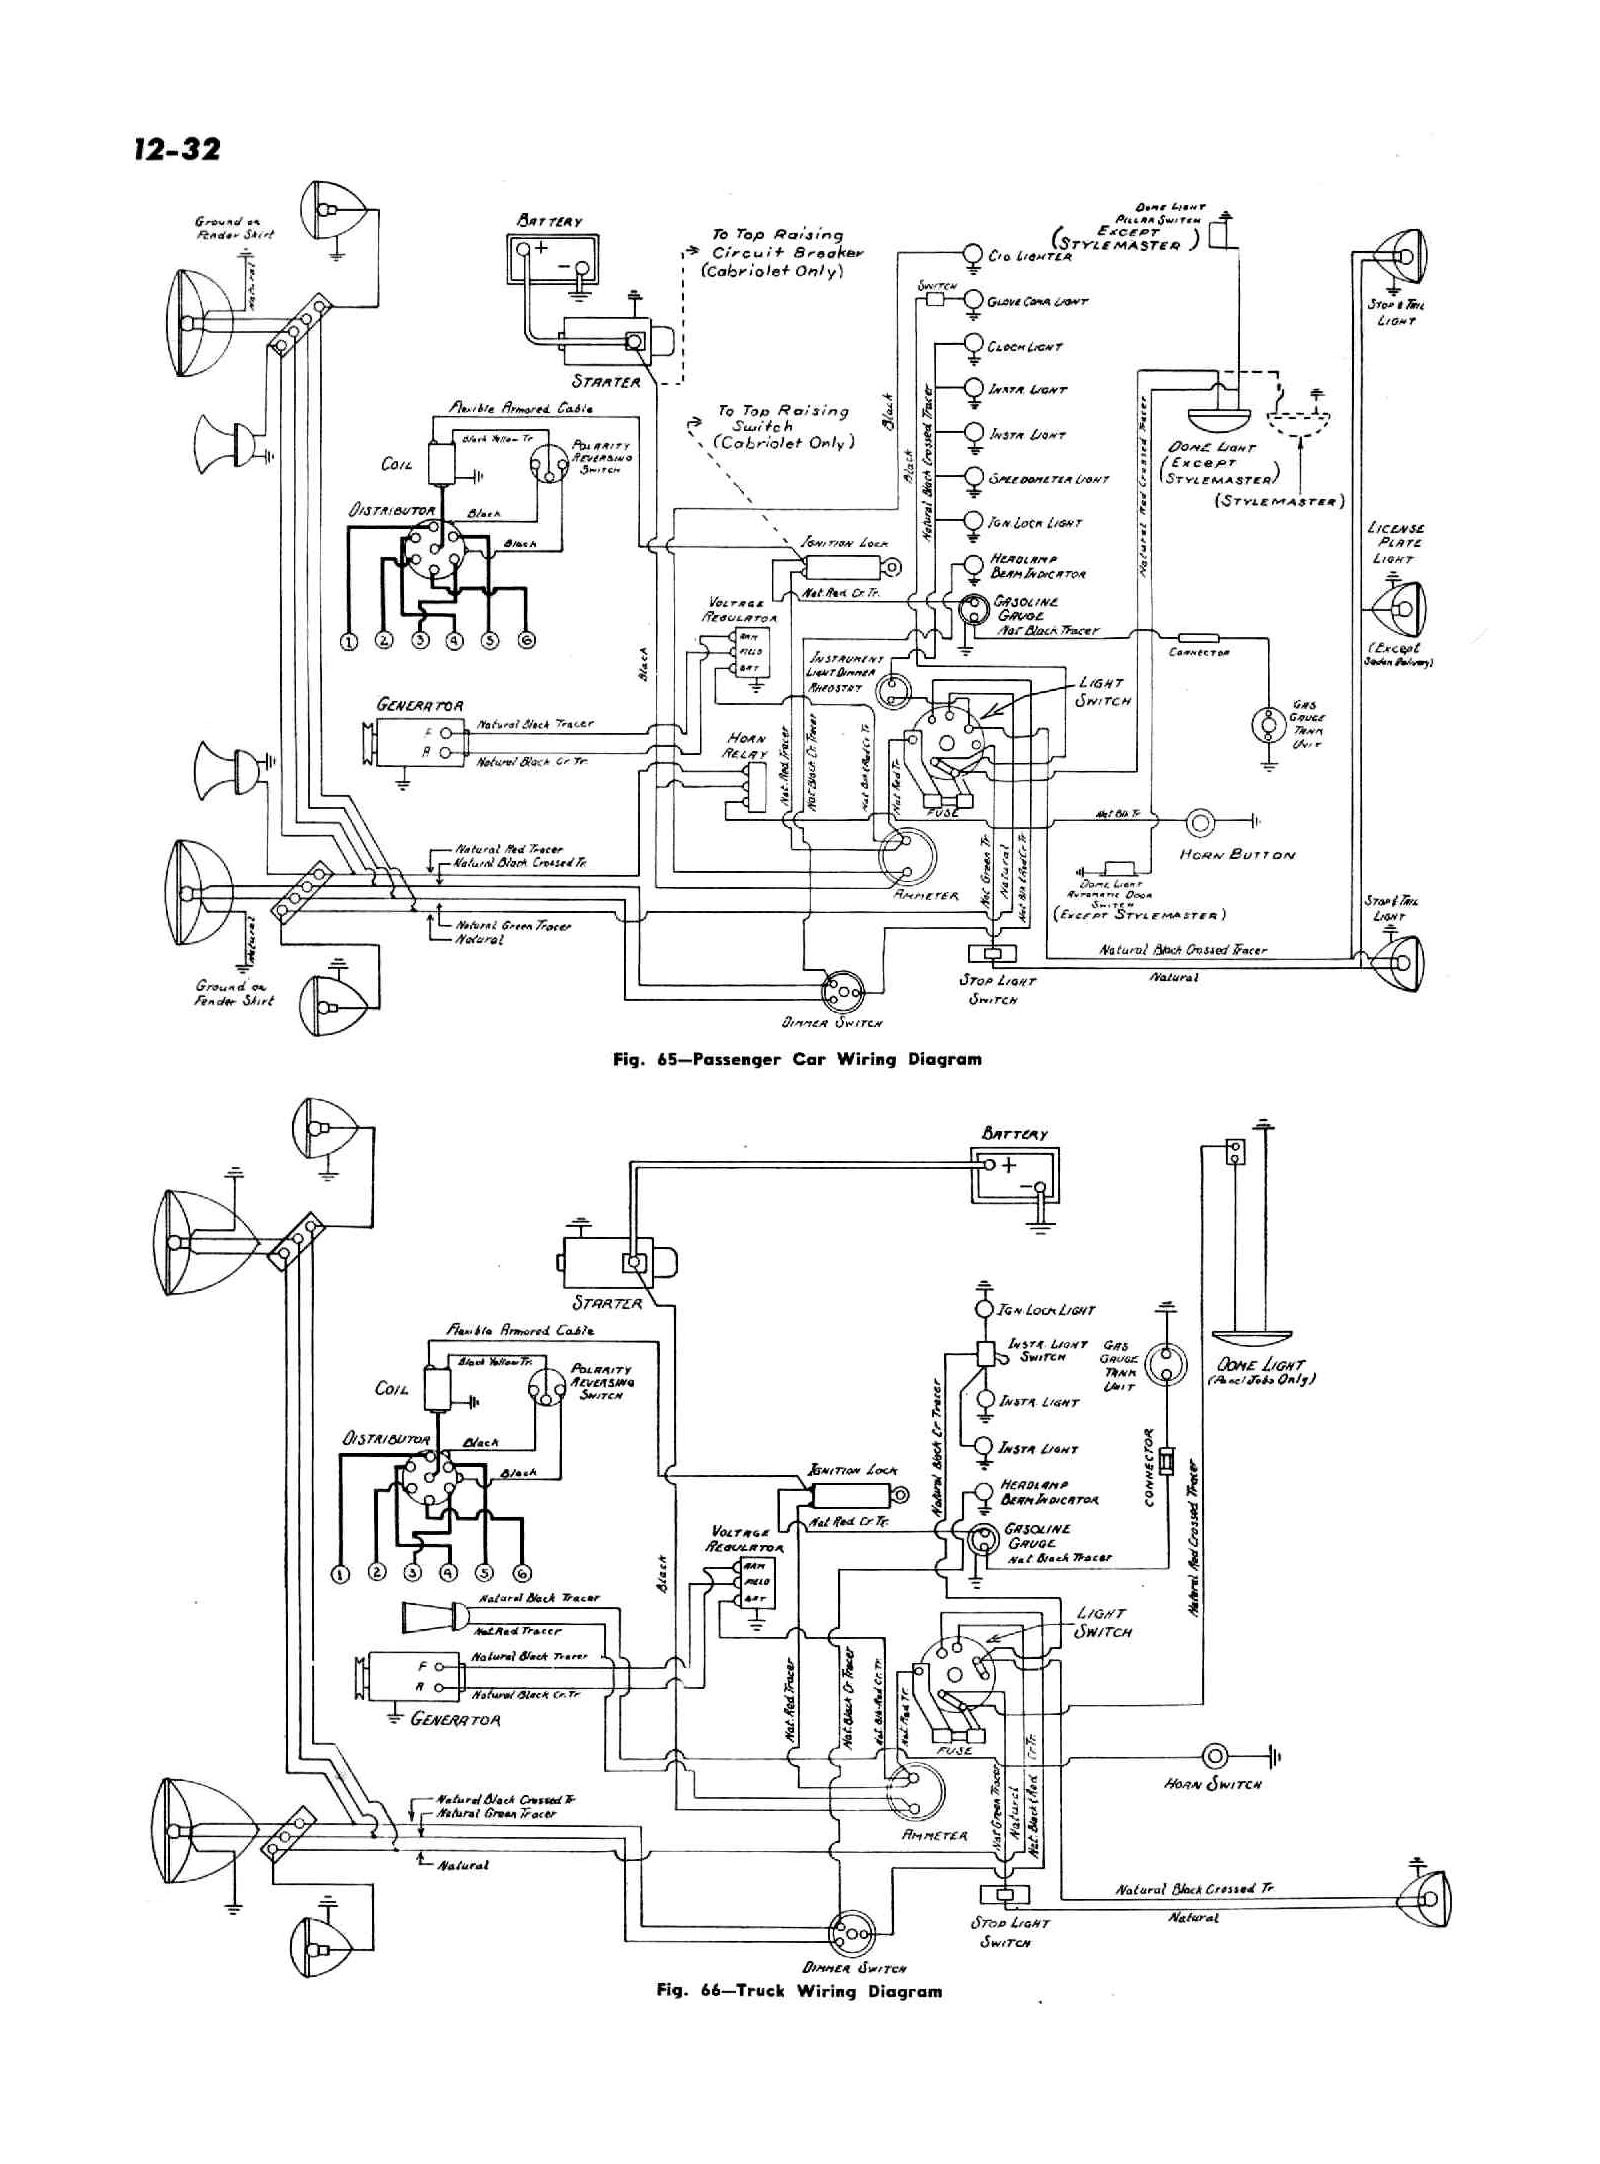 2004 chevy cavalier engine wiring diagram